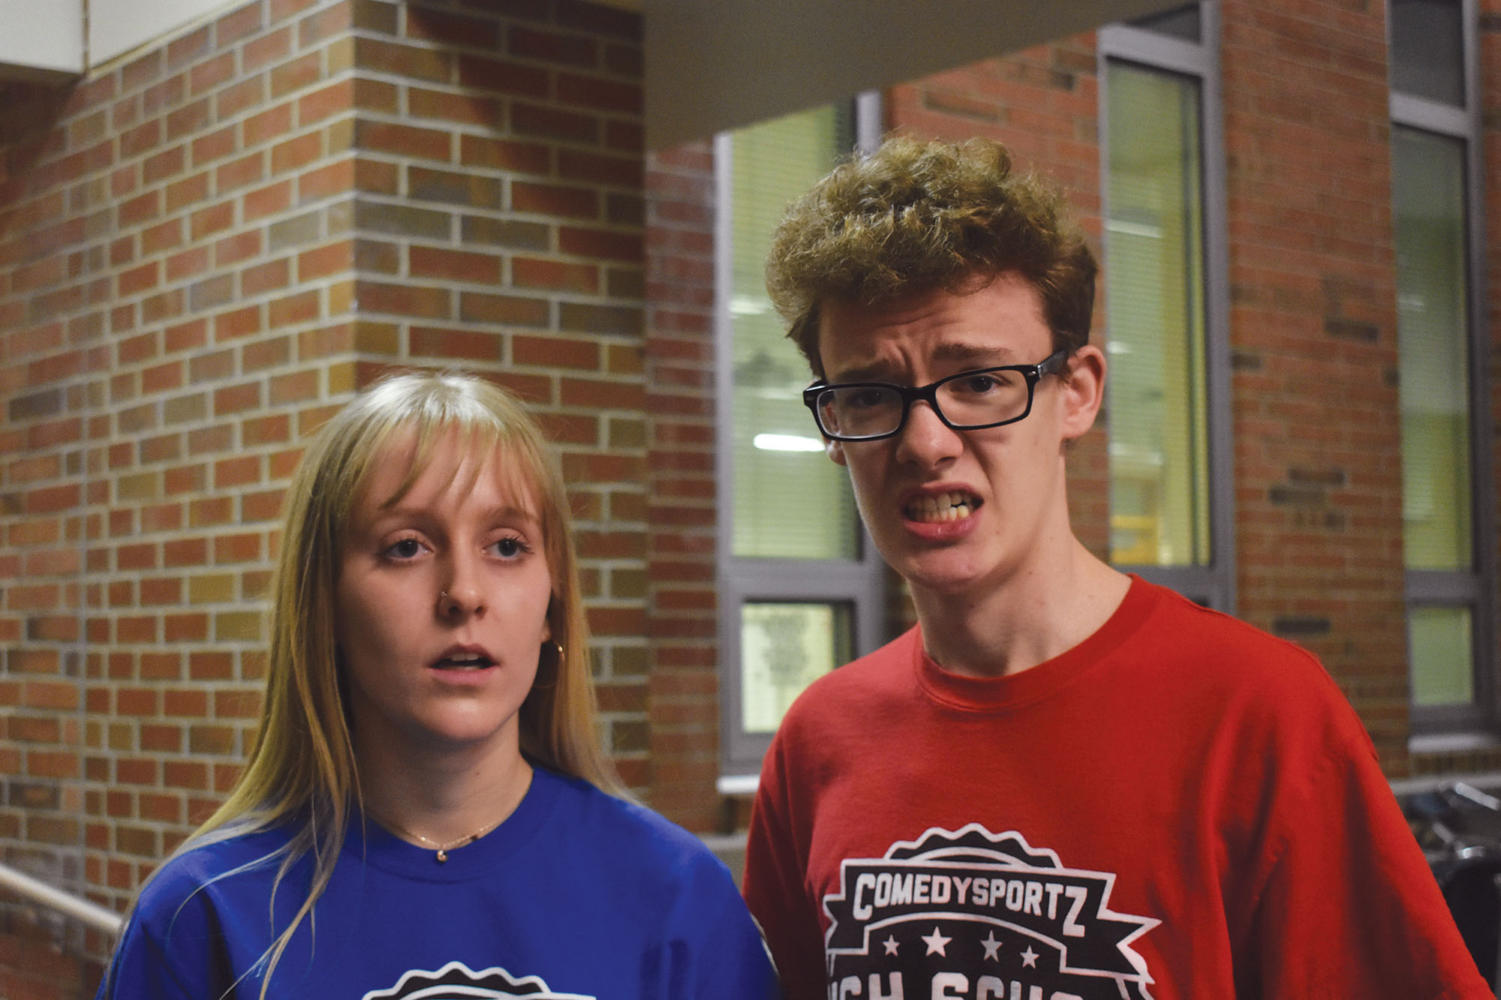 Piper Dafforn, Comedy Sportz team captain and senior, and Comedy Sportz member and senior Austin Roberts make silly faces during an improv game. Both Dafforn and Roberts said Comedy Sportz has benefitted them in many ways.